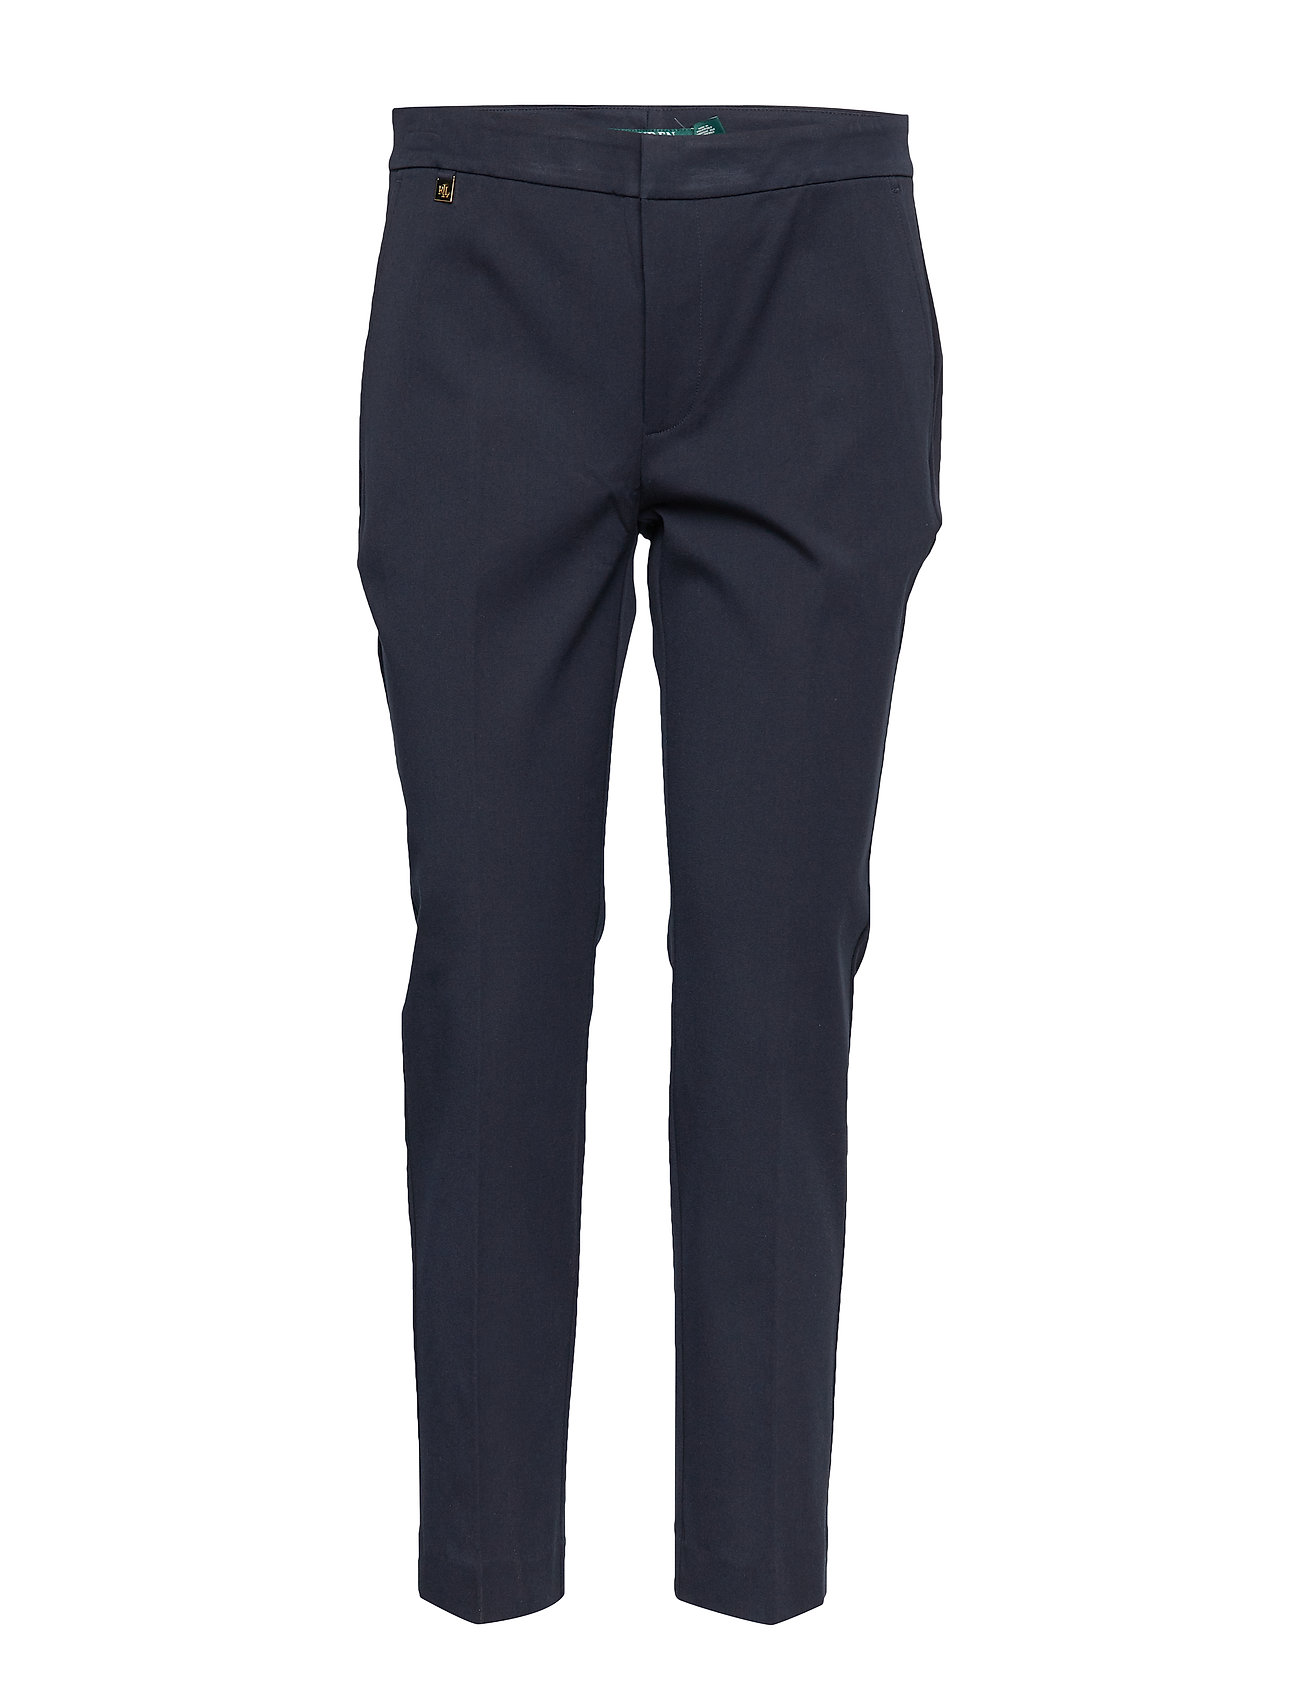 Lauren Ralph Lauren Cotton Twill Skinny Pant - LAUREN NAVY